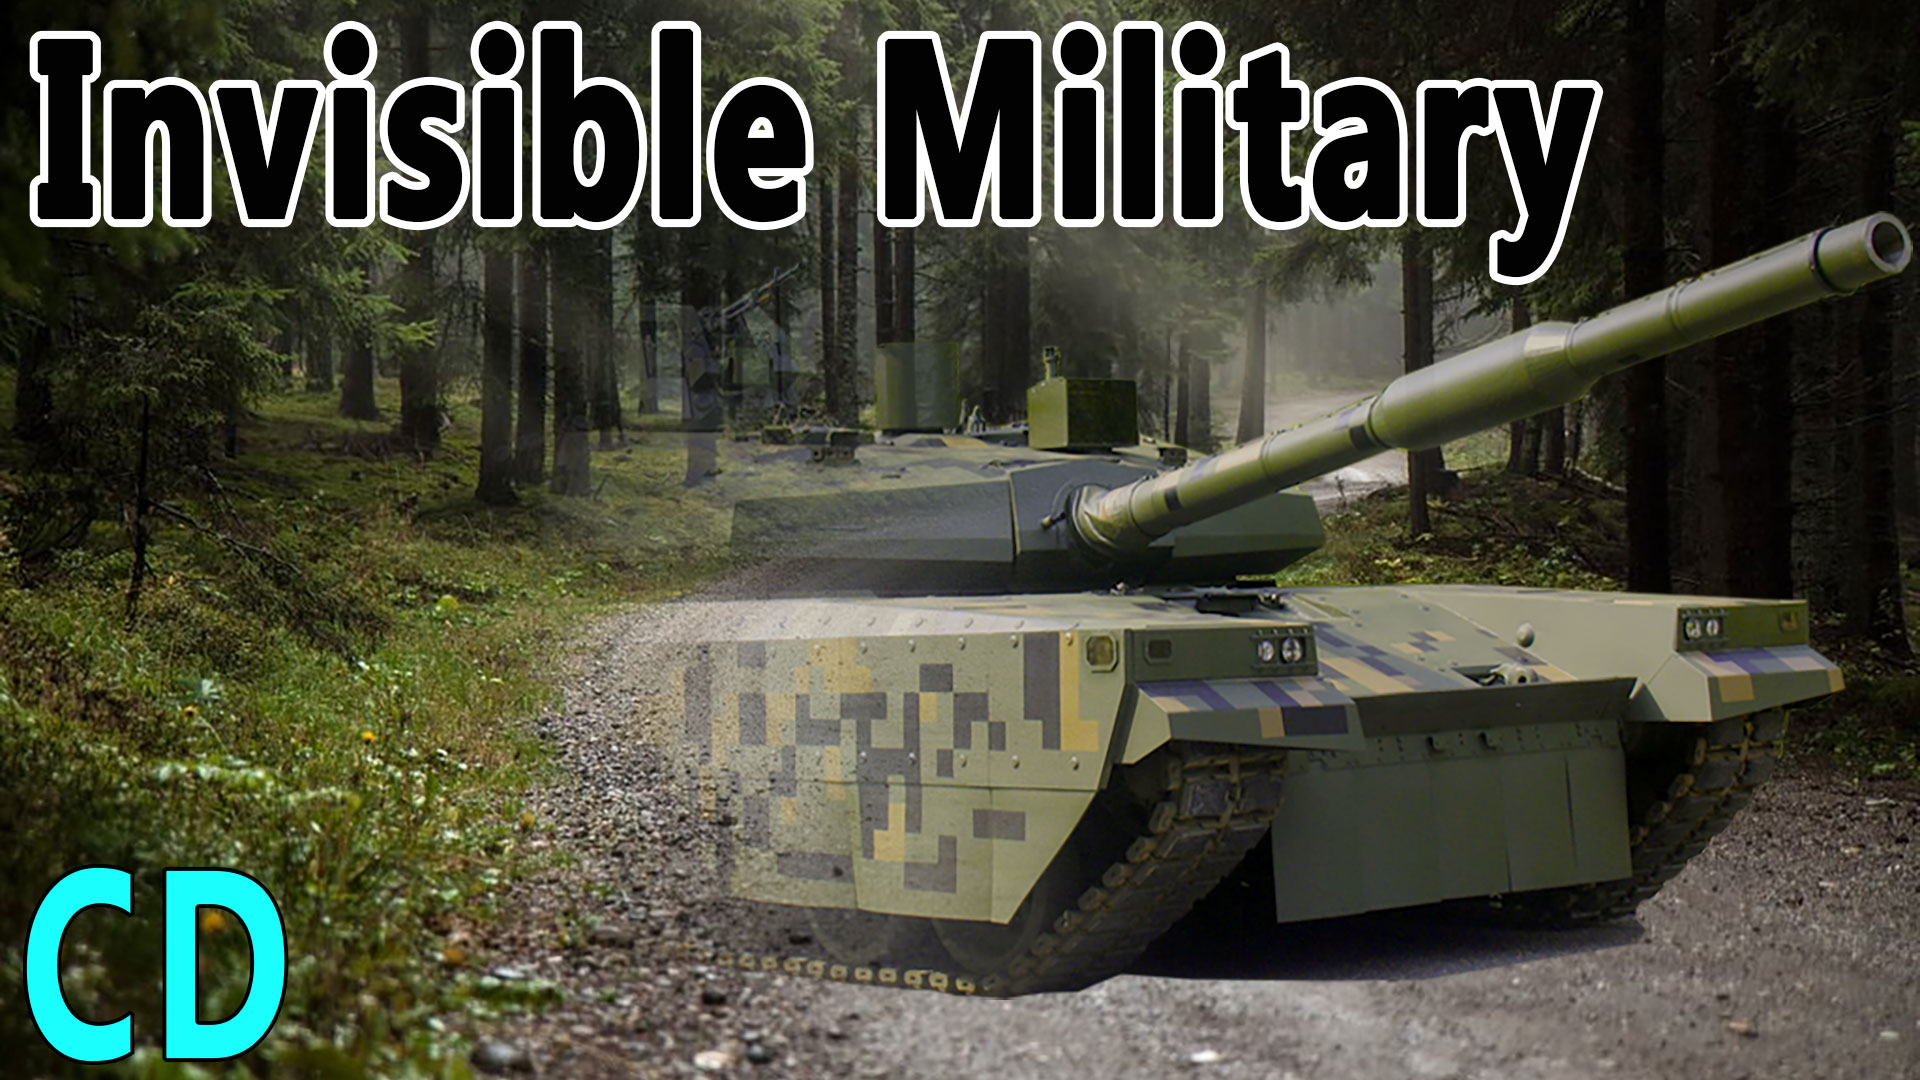 How do you make Invisible Ships, Planes & Tanks?